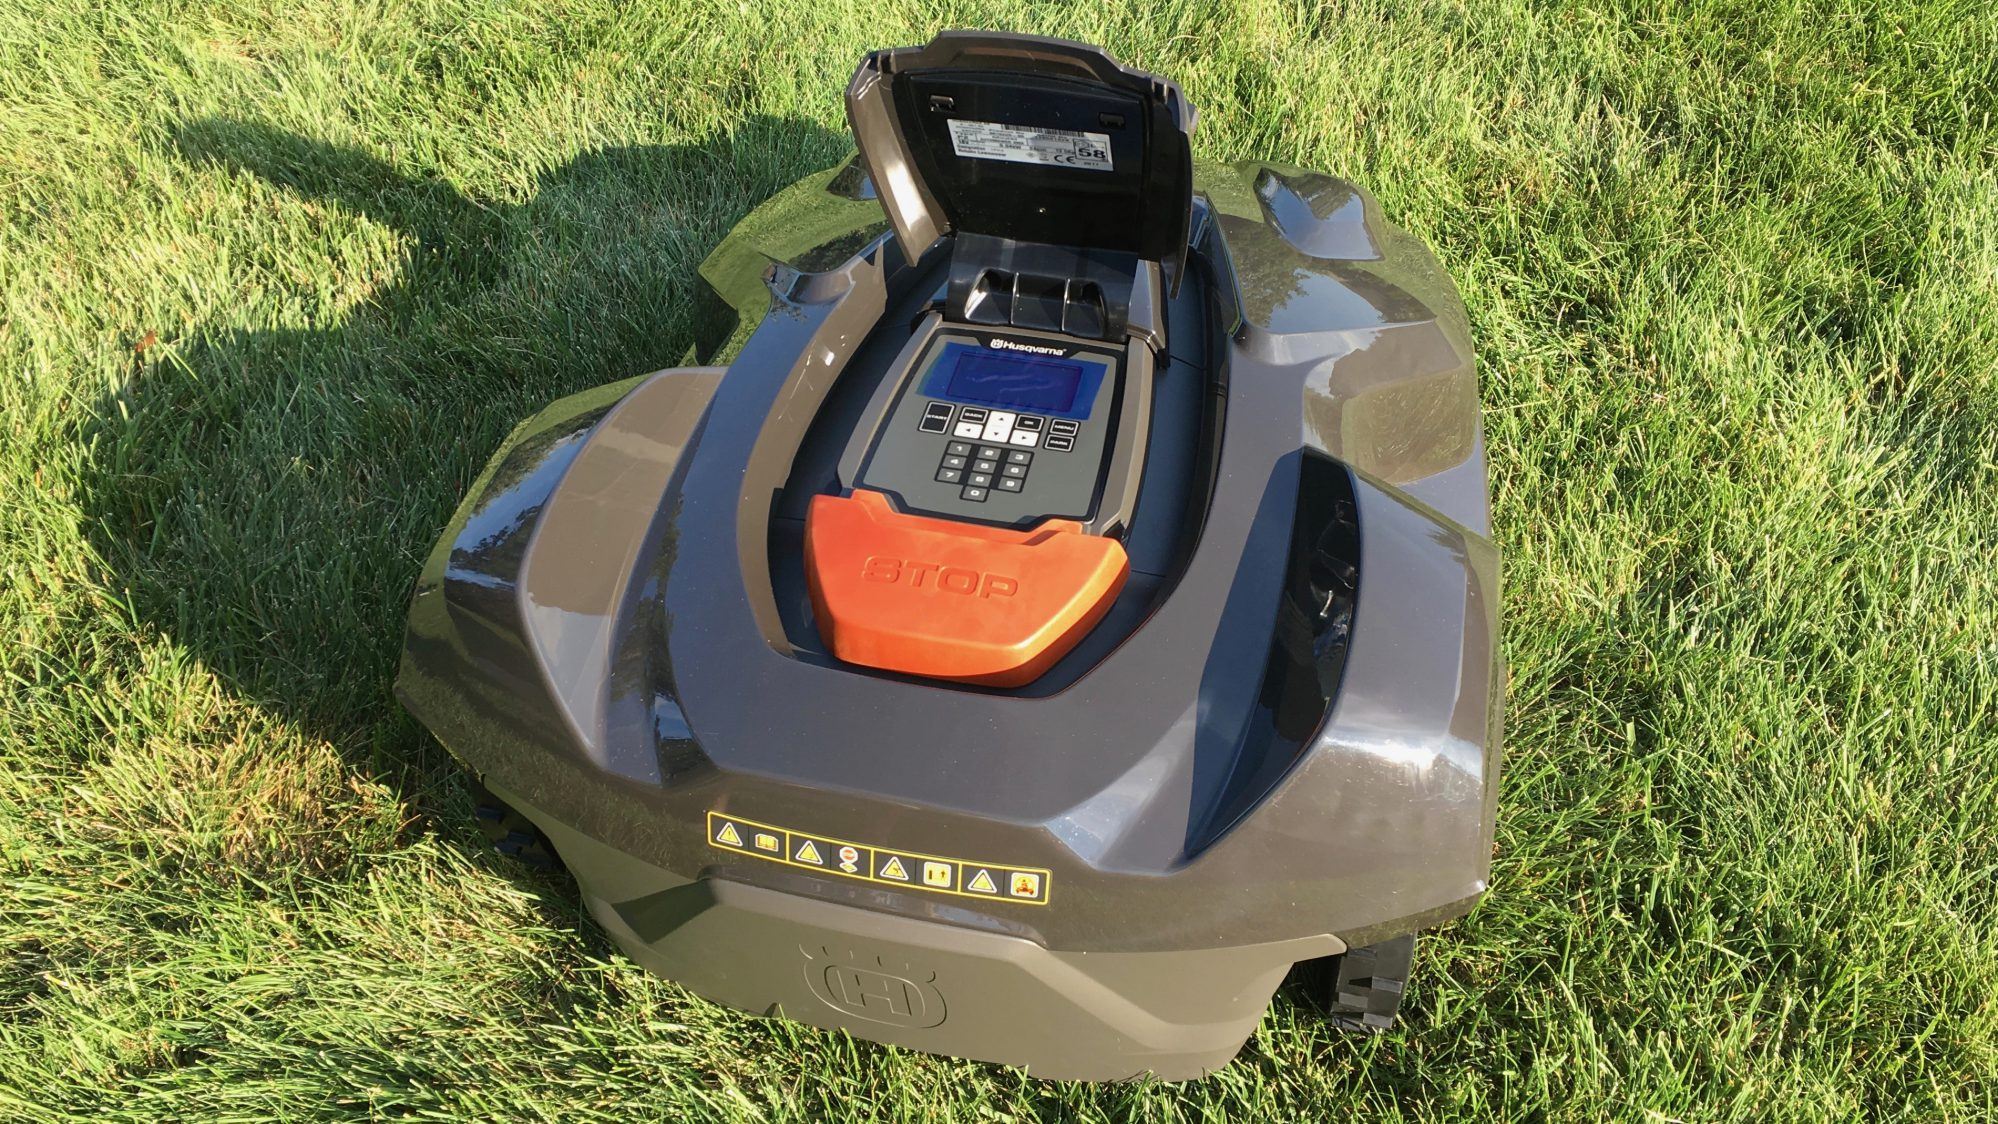 husqvarna automower the ios controlled mower that cuts your lawn so you don 39 t have to video. Black Bedroom Furniture Sets. Home Design Ideas